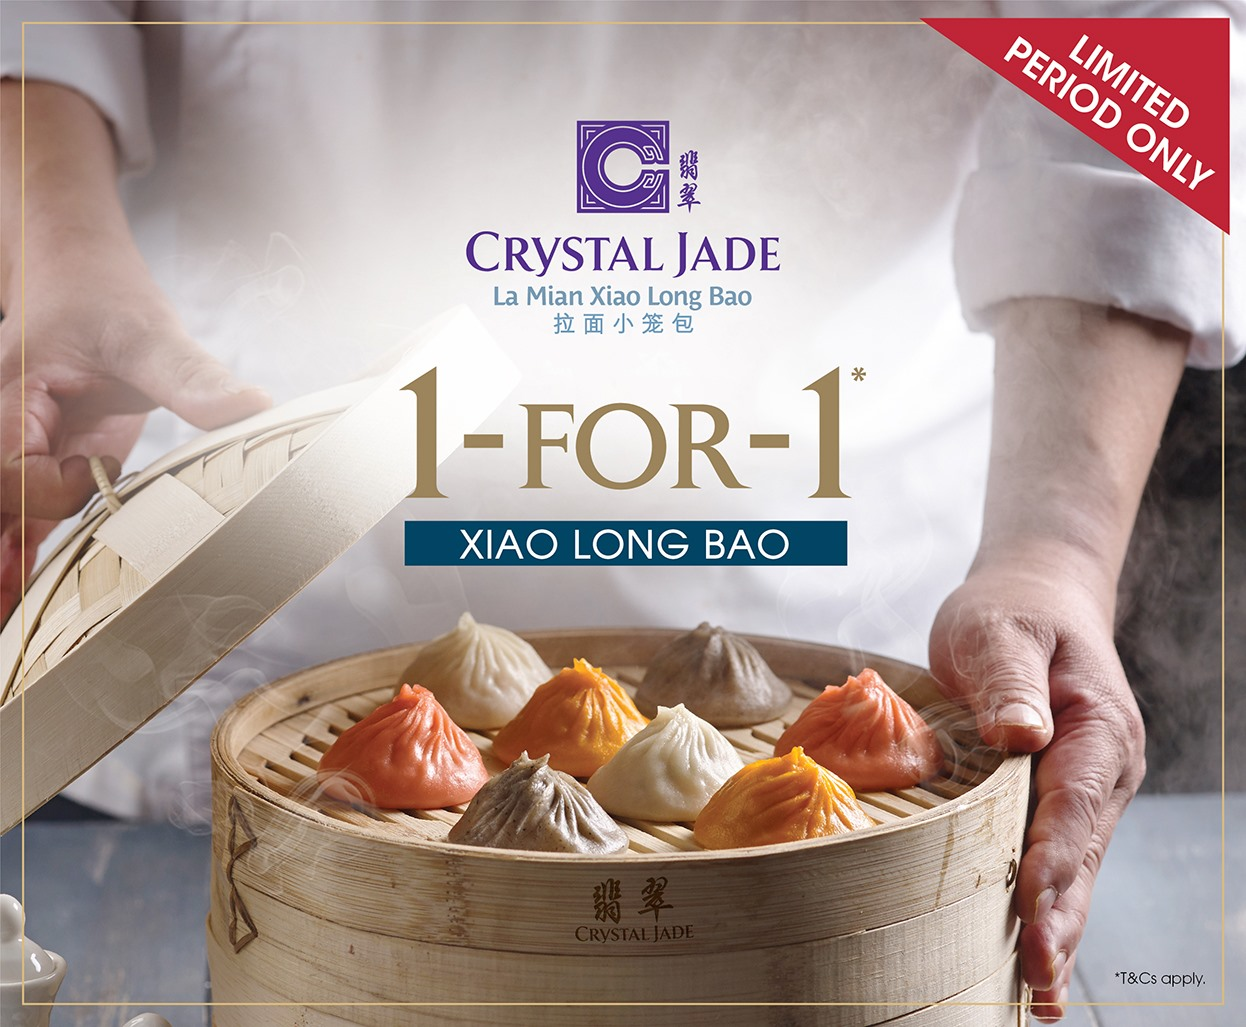 Crystal Jade Singapore Xiao Long Bao 1-for-1 Promotion ends 15 Dec 2019 | Why Not Deals & Promotions